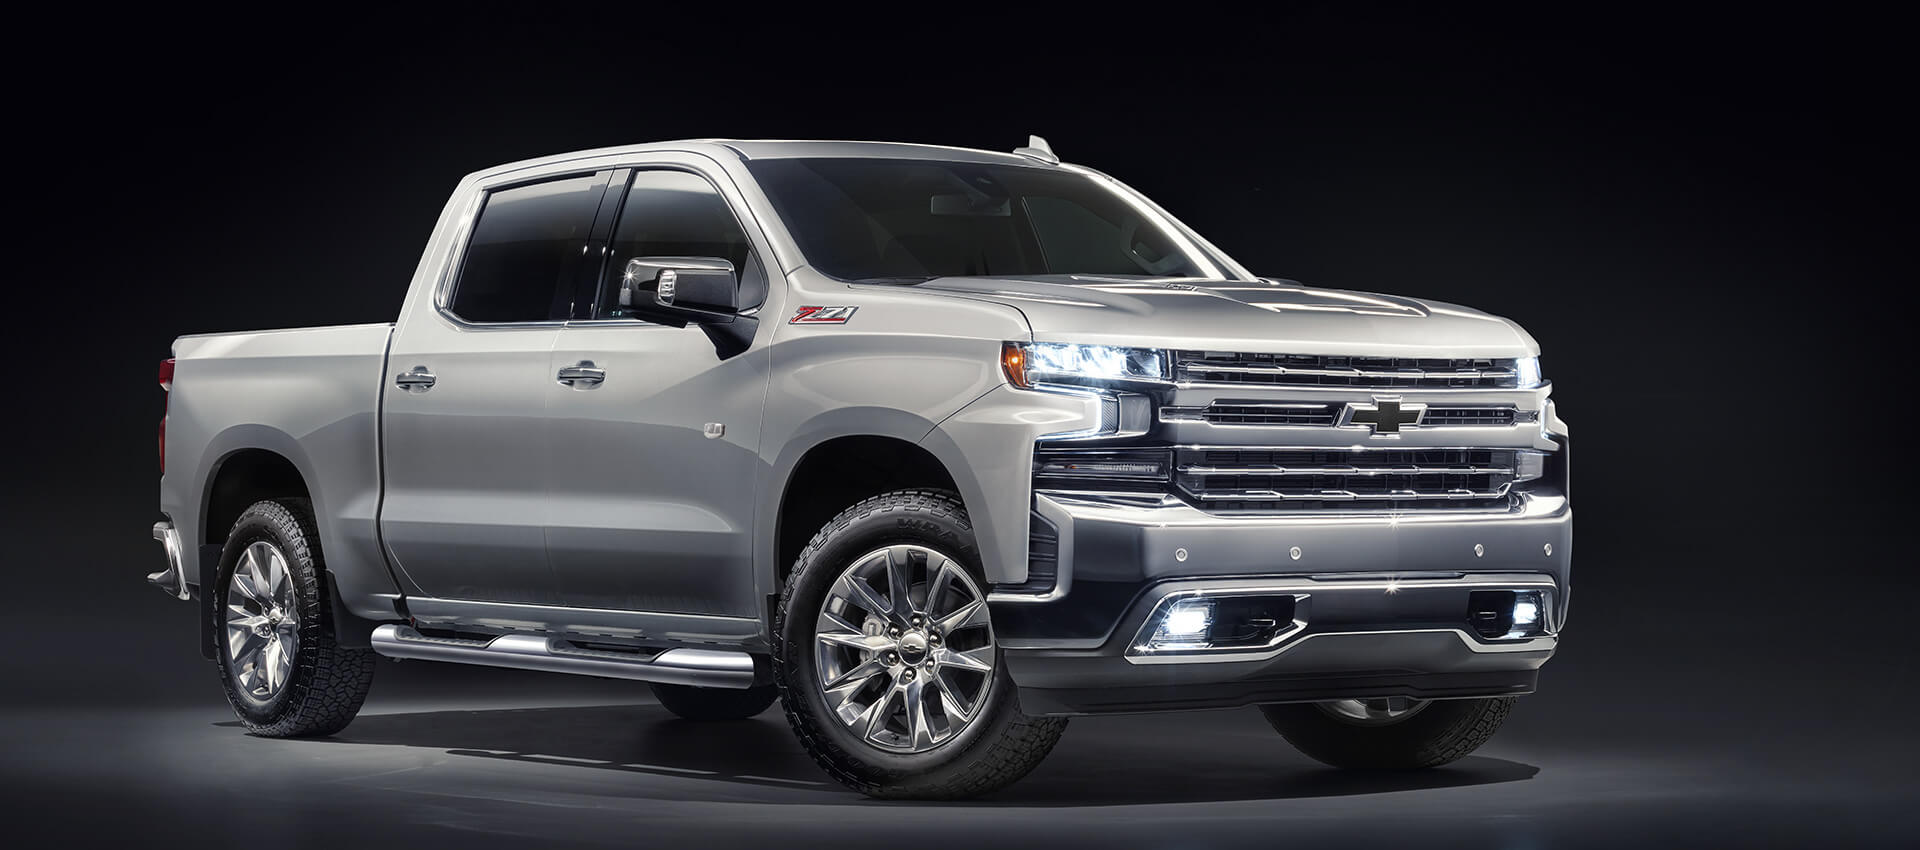 Chevrolet Silverado - 1500 Coming soon